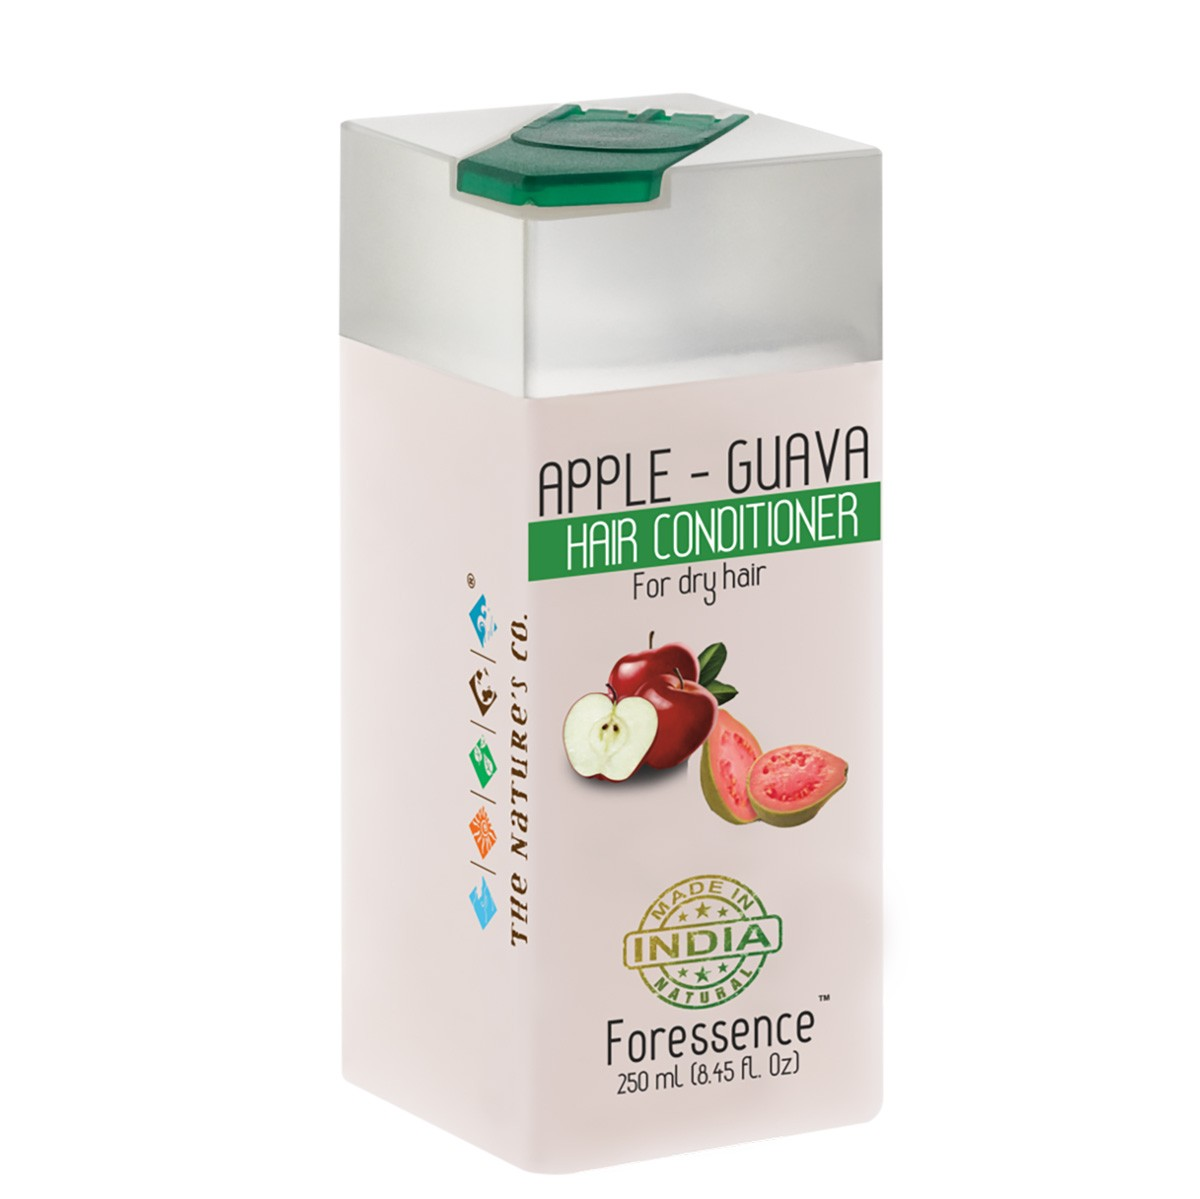 APPLE-GUAVA HAIR CONDITIONER